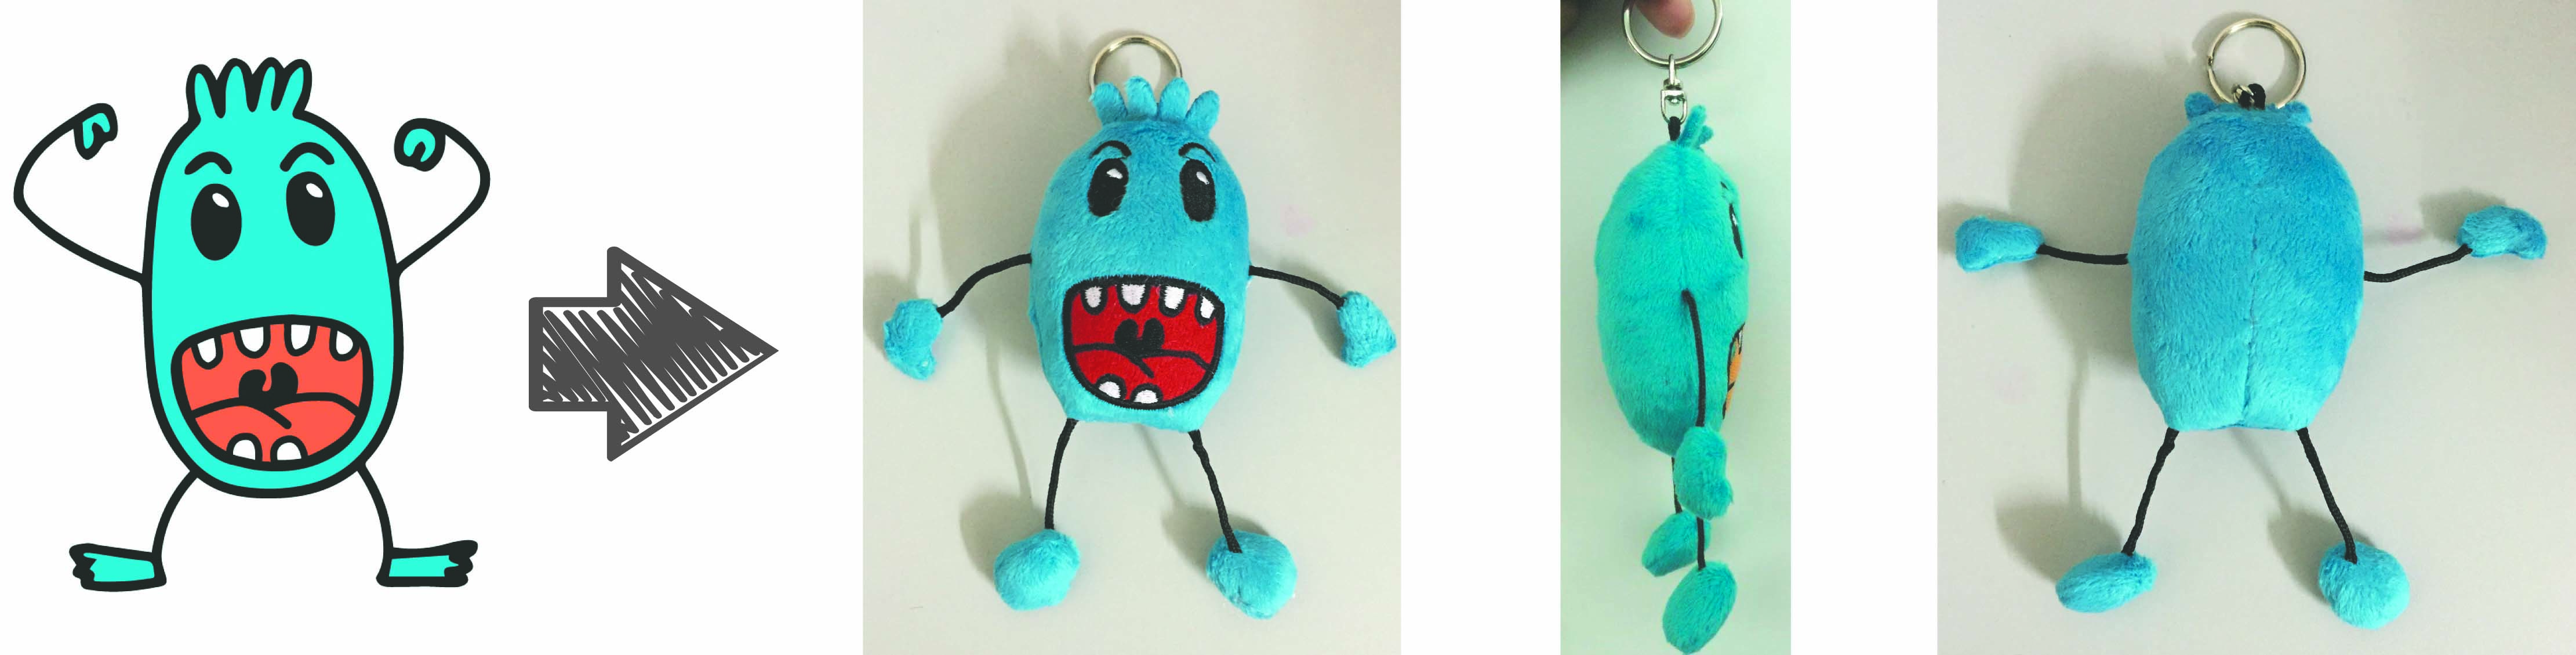 Quebec Cancer stuffed animal keychain